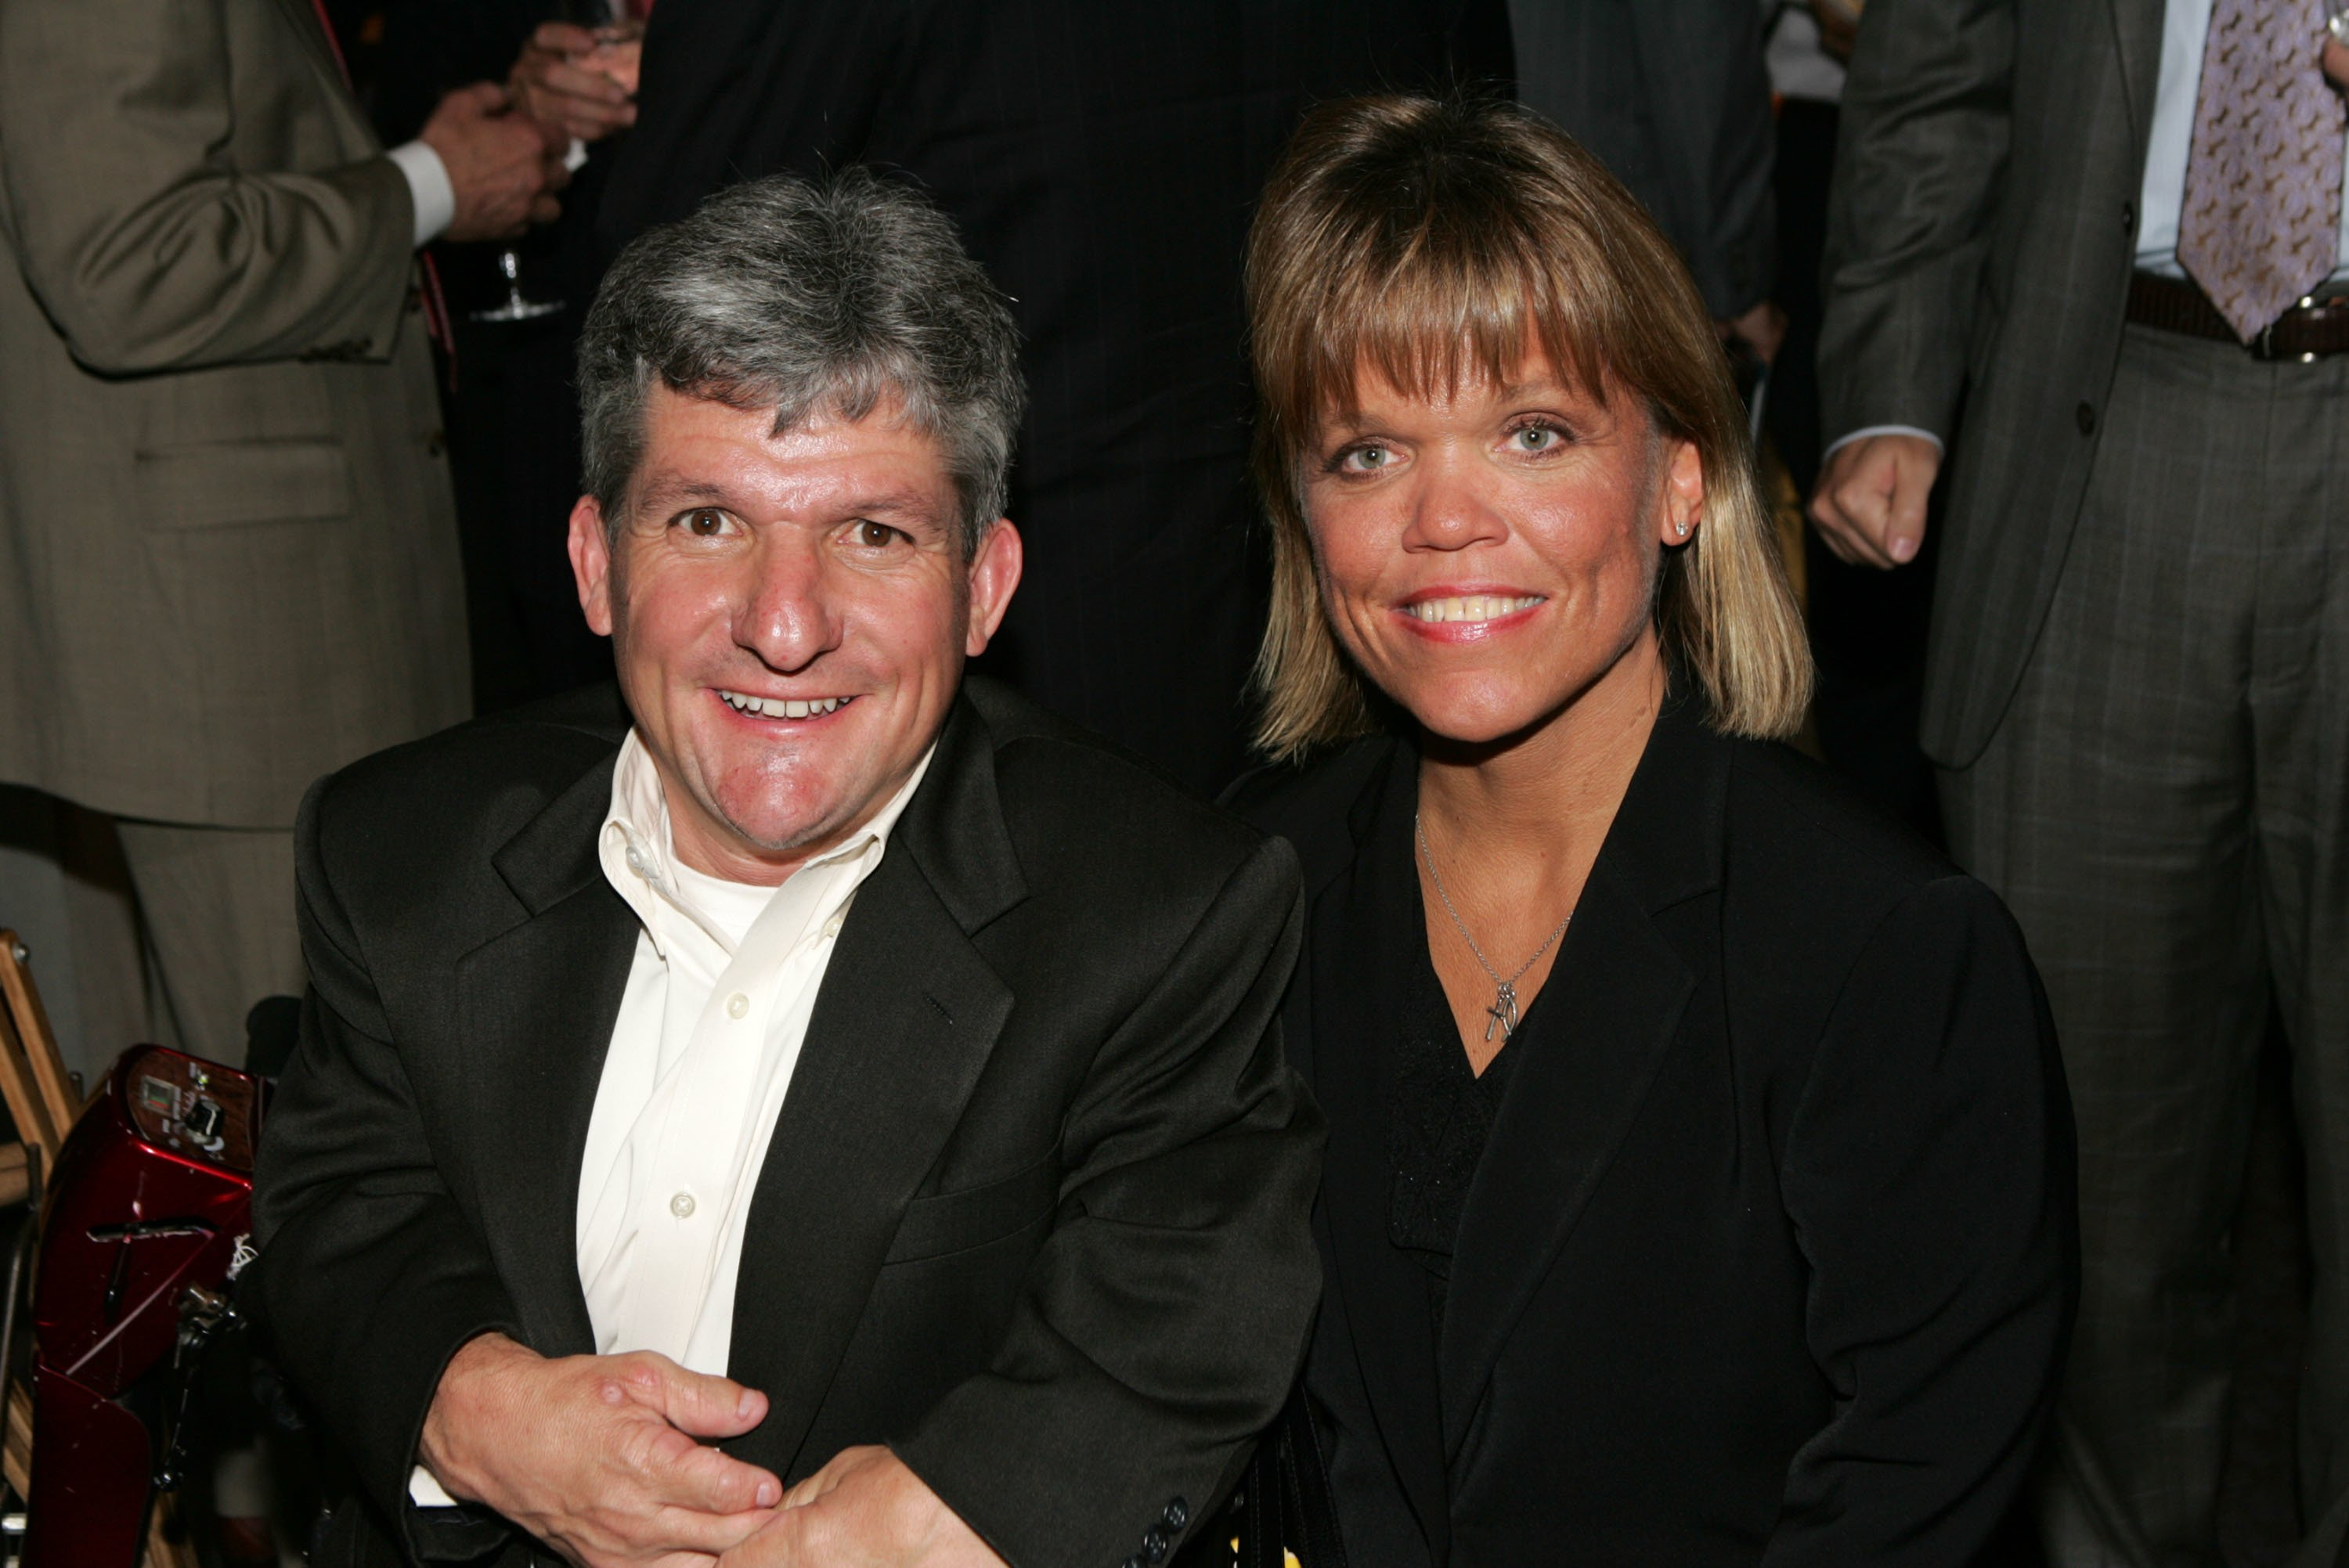 Television personalities Matt and Amy Roloff attend the Discovery Upfront Presentation NY - Talent Images | Getty Images